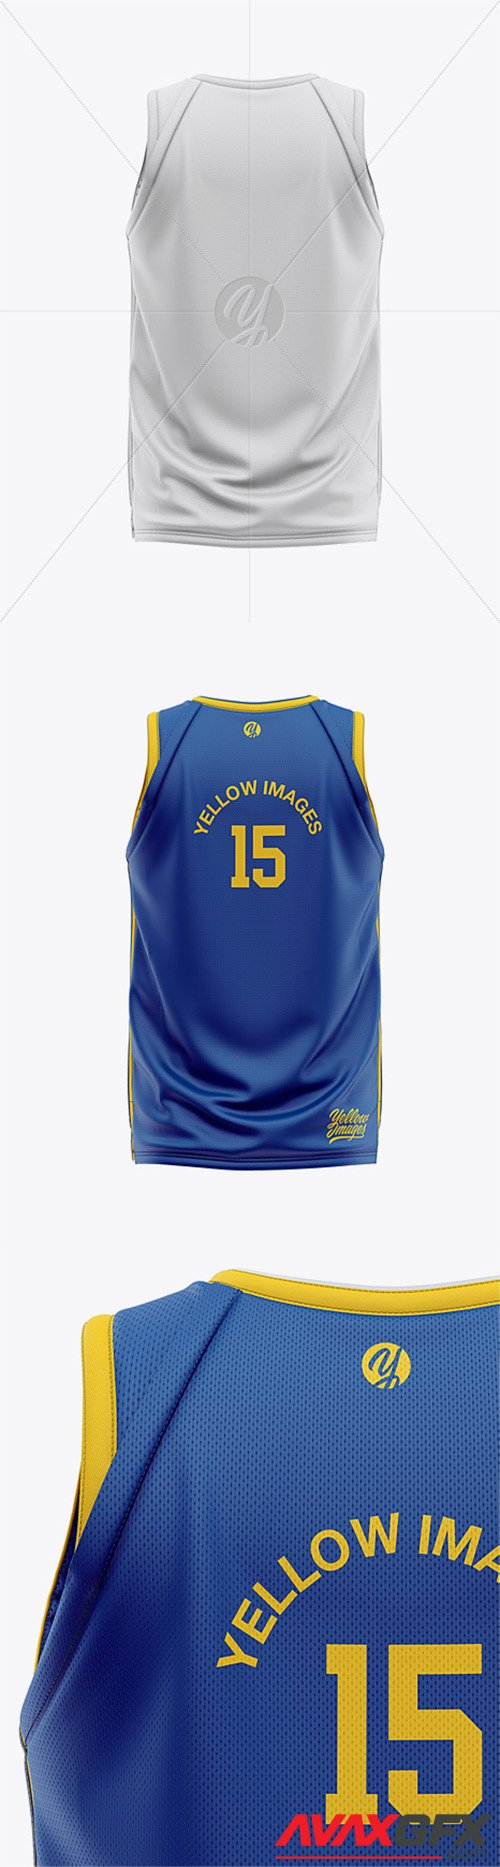 Men's Basketball Jersey Mockup - Back View 33141